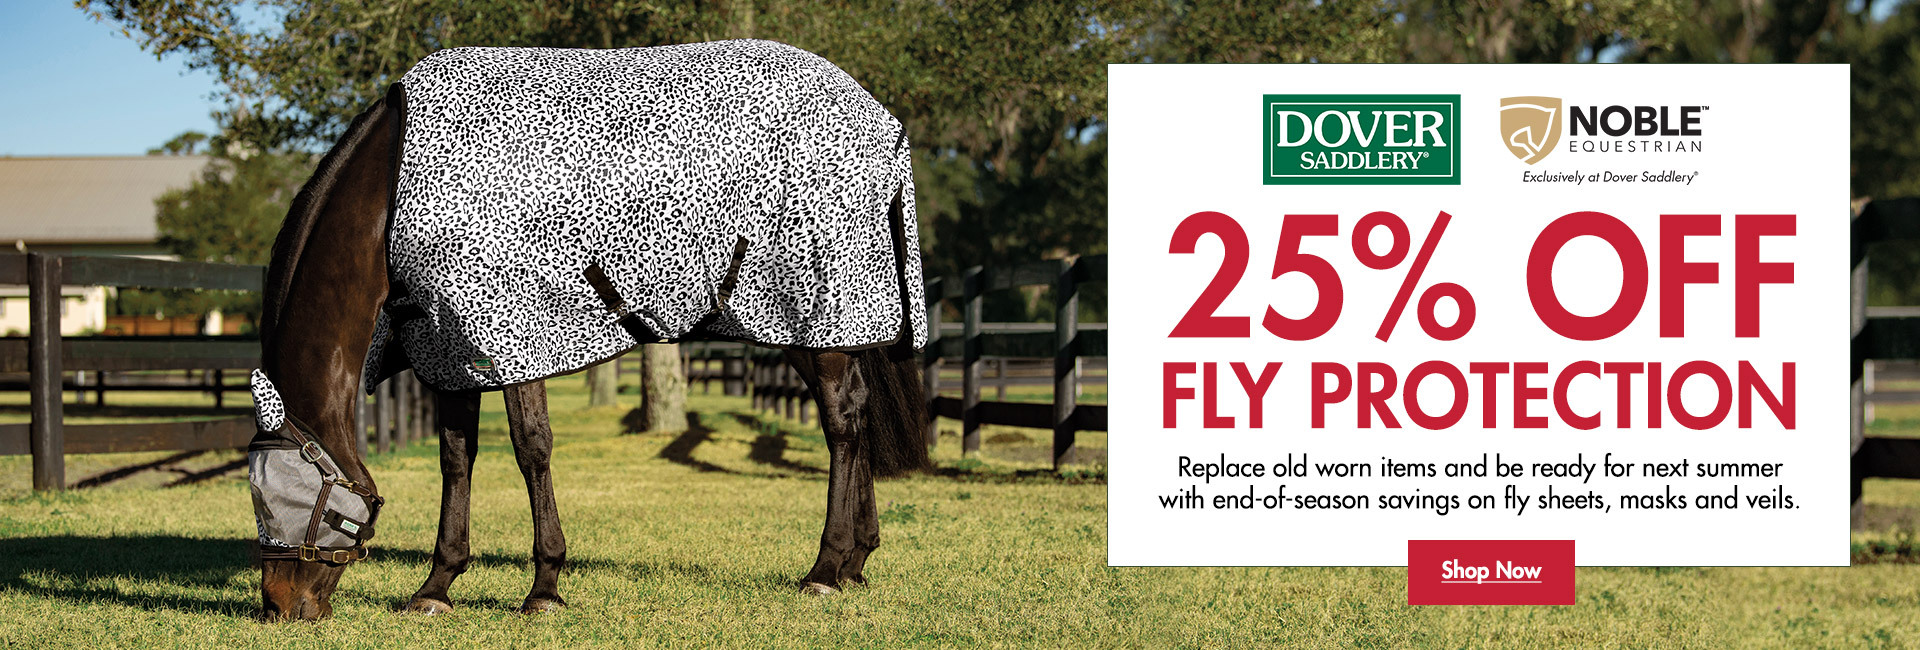 25% OFF Dover Saddlery & Noble Equestrian Fly